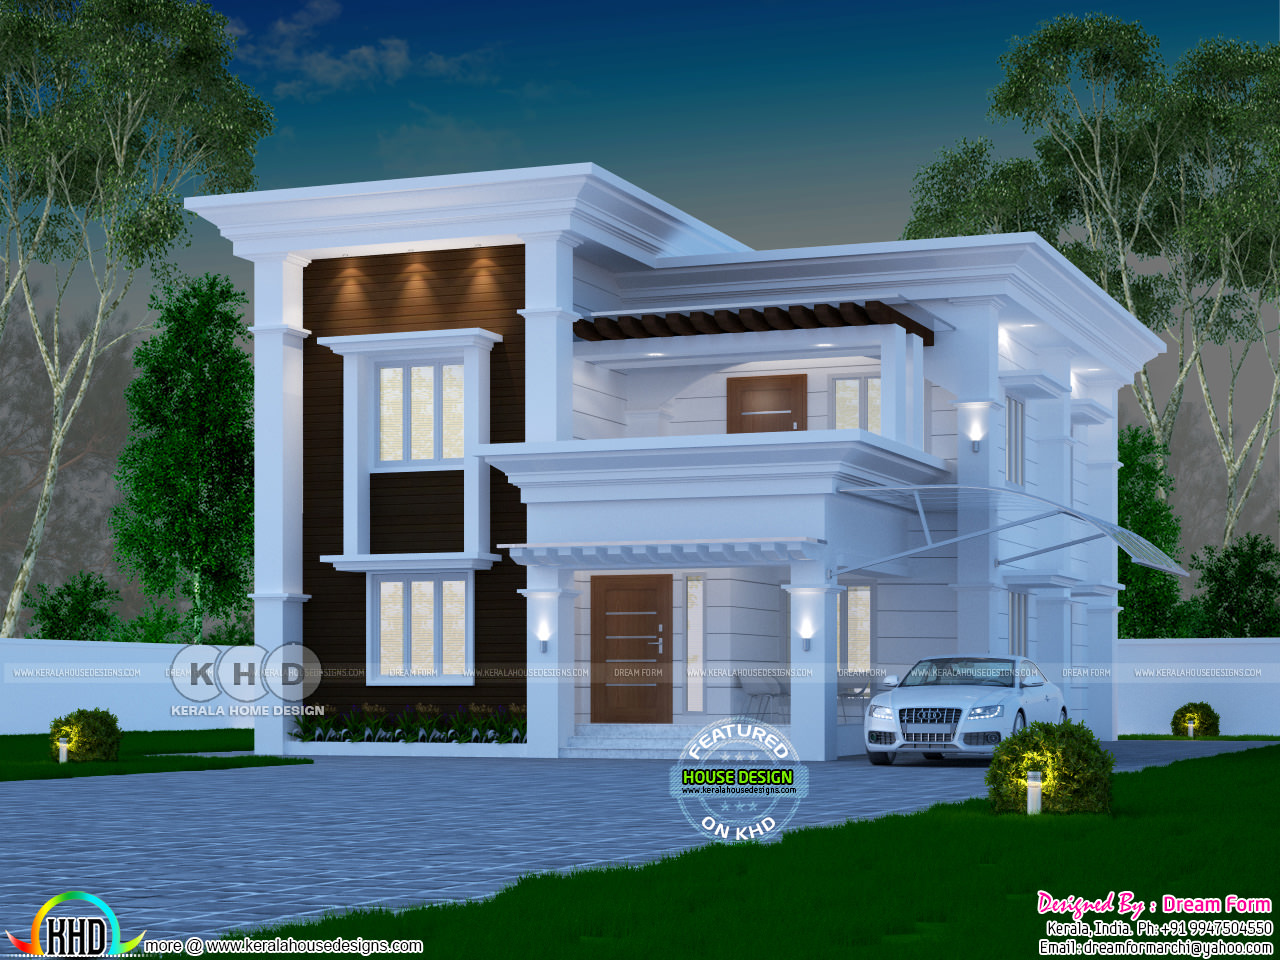 4 bedroom 2060 sq ft Arabian style home design | Kerala home design on roman house designs, greek house designs, ranch house designs, cartoon house designs, outdoor house designs, pakistani house designs, american house designs, spanish house designs, polish house designs, german house designs, mexican house designs, paint house designs, french house designs, armenian house designs, italian house designs, canadian house designs, english house designs, extreme house designs, japanese house designs, mediterranean house designs,